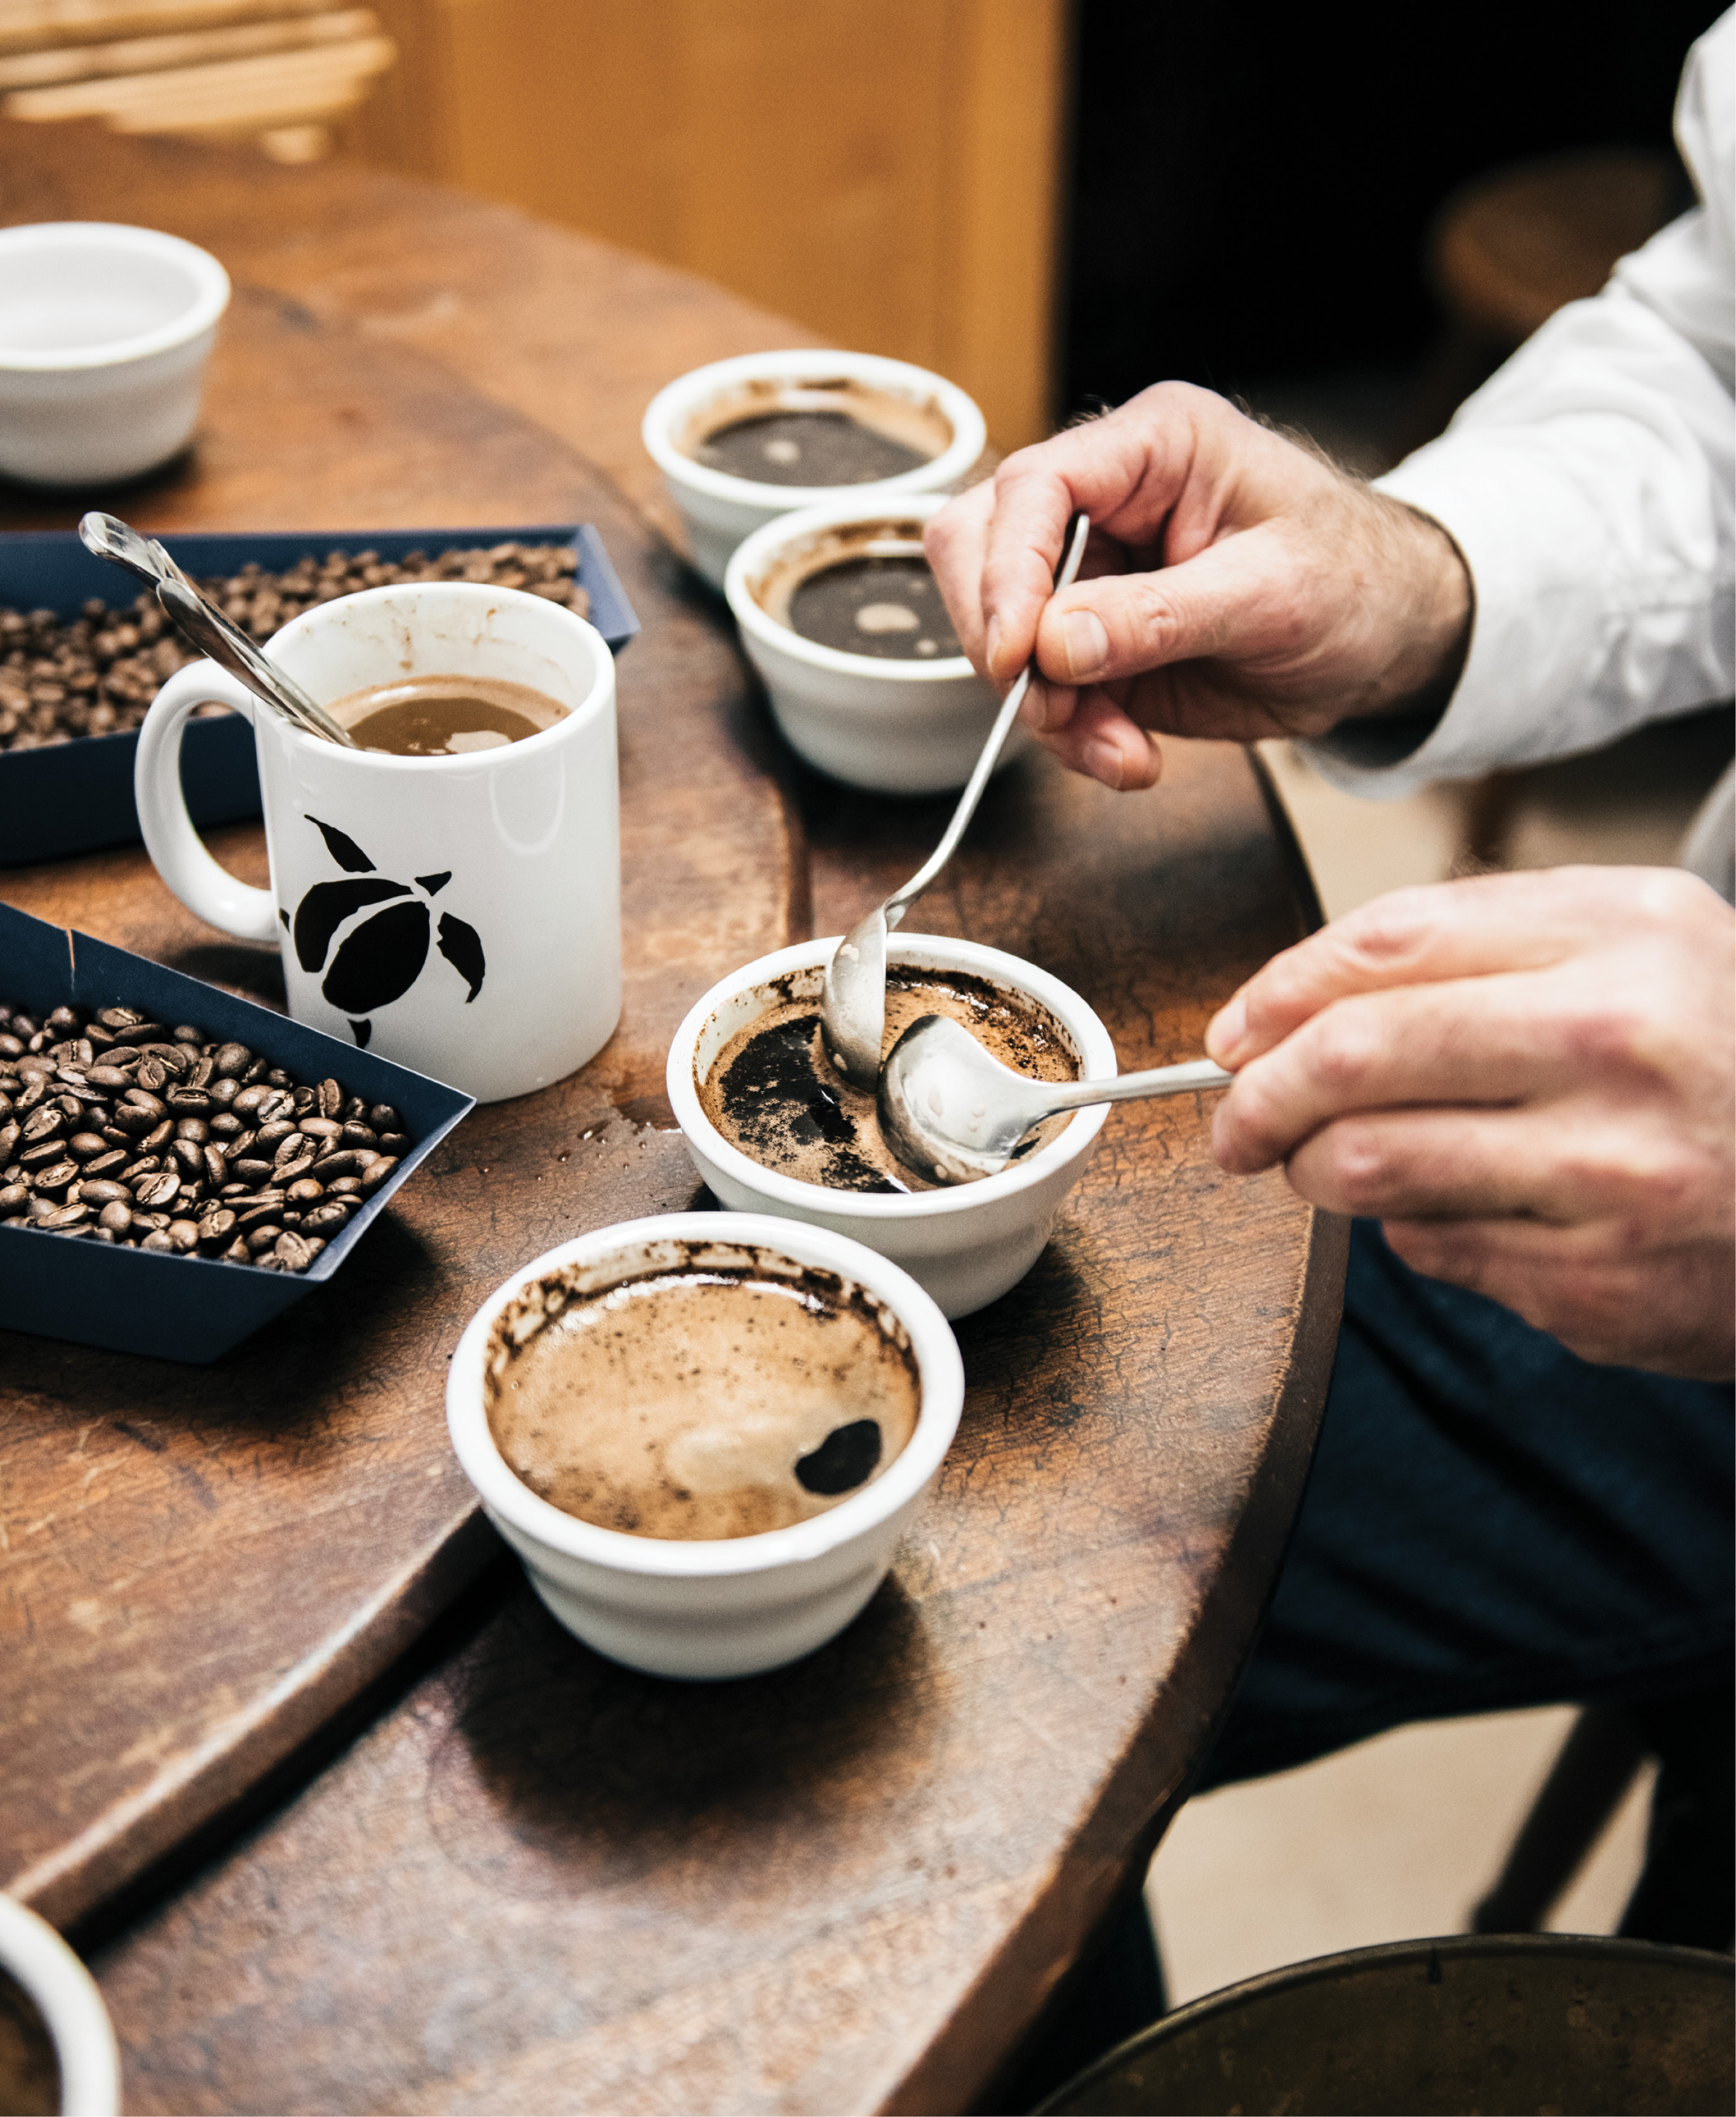 Higher Grounds: Charleston Coffee Roasters's Lowell Grosse demonstrates the art of cupping using deep spoons made expressly for the practice.